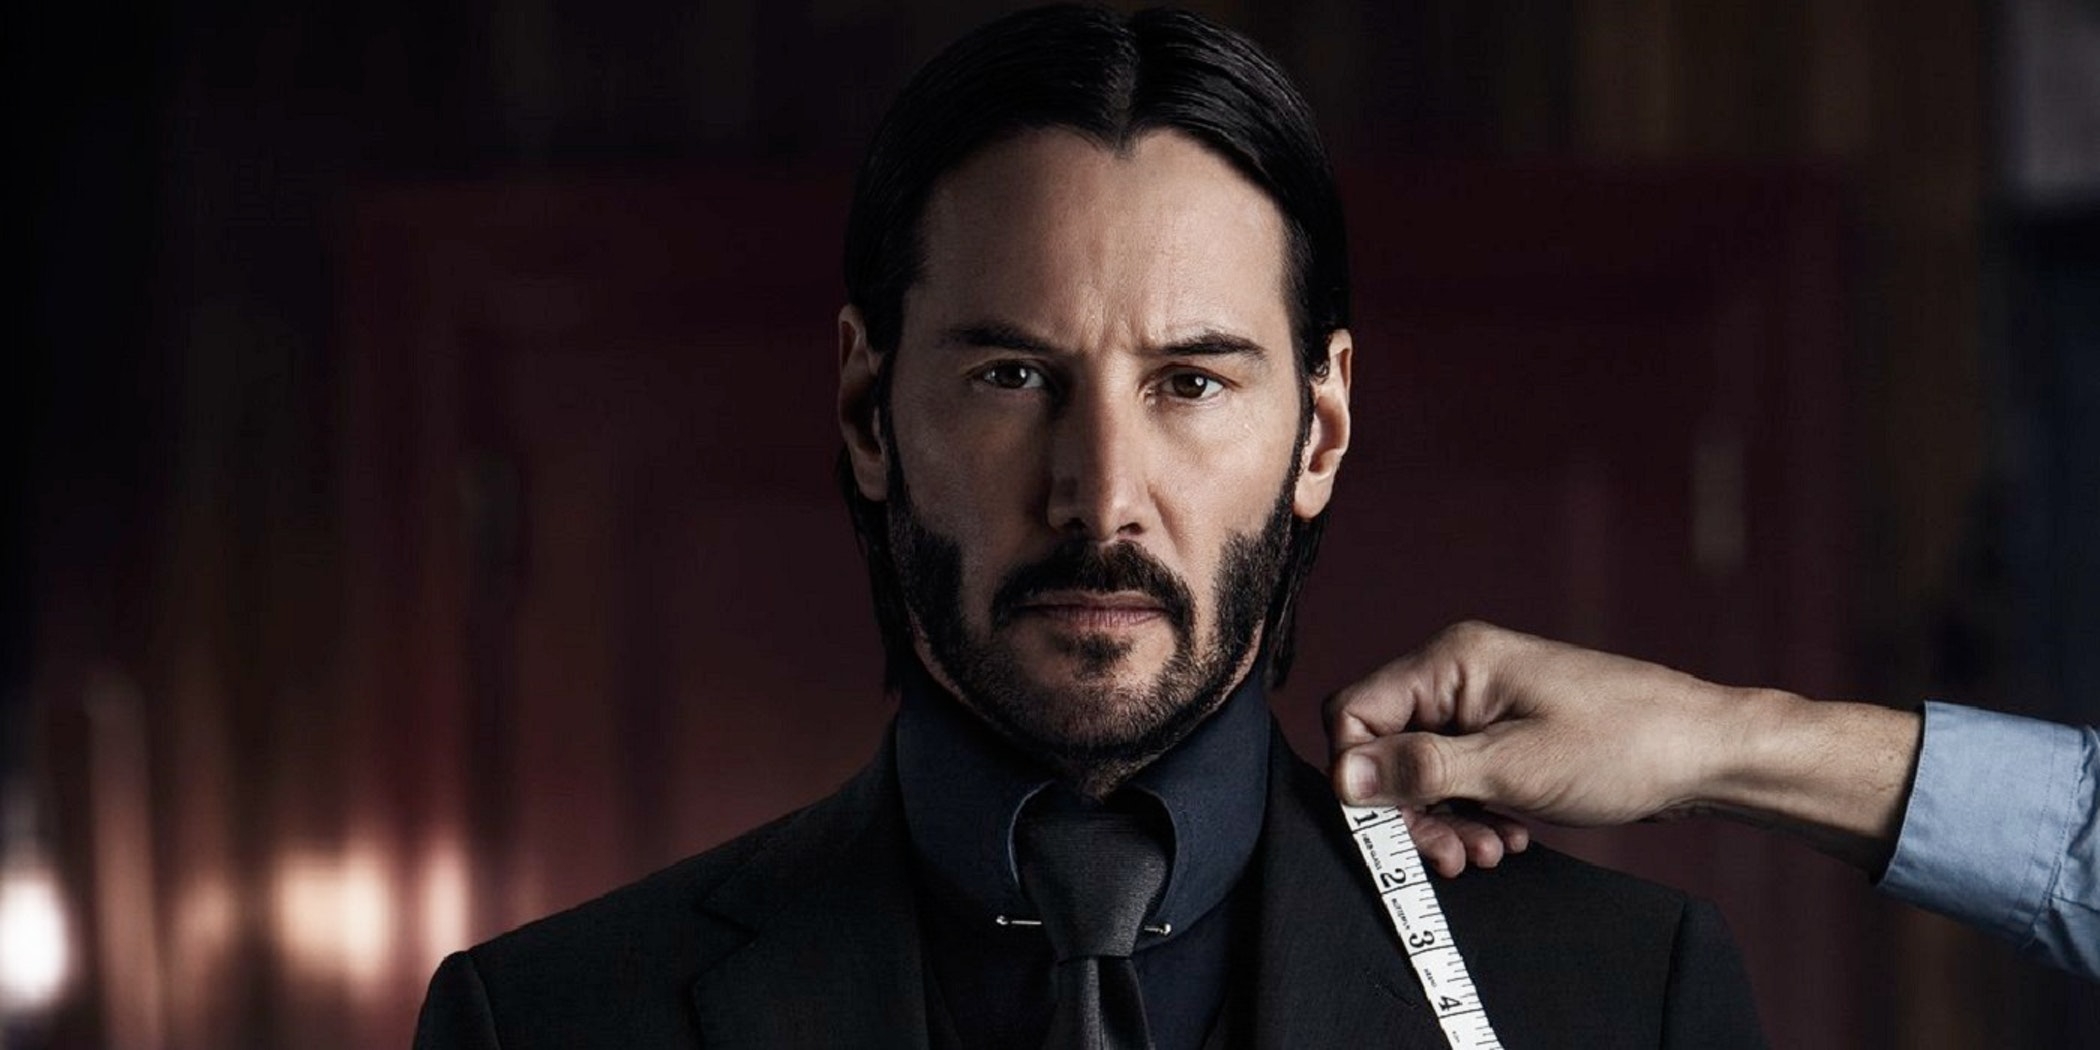 Keanu Reeves's Memeable 'John Wick 2' Will Solidify His Legacy